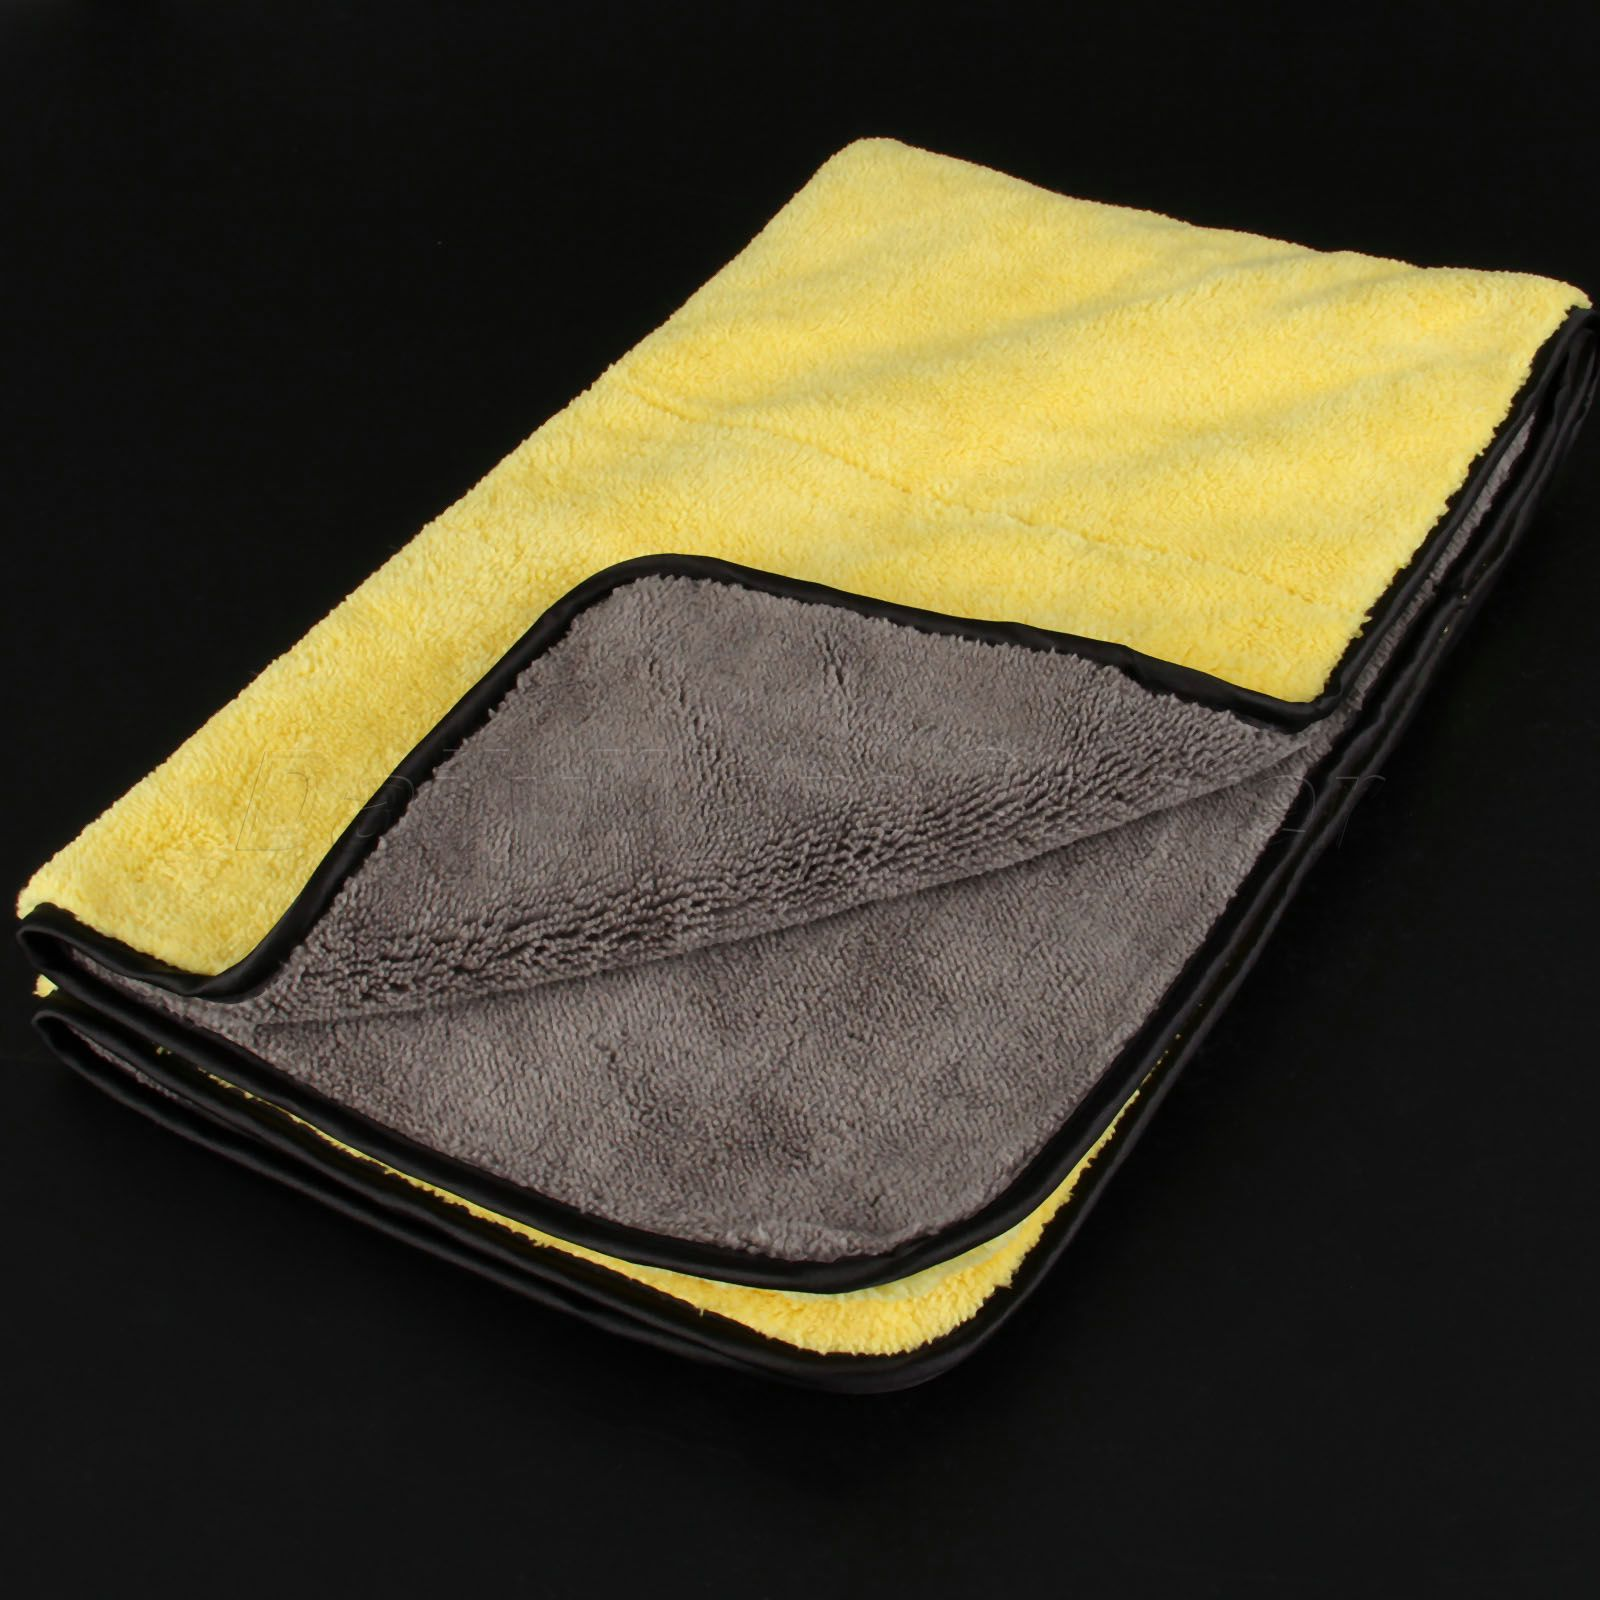 Largest Microfiber Towel: New 92x56cm Large Size Microfiber Car Cleaning Cloth Towel